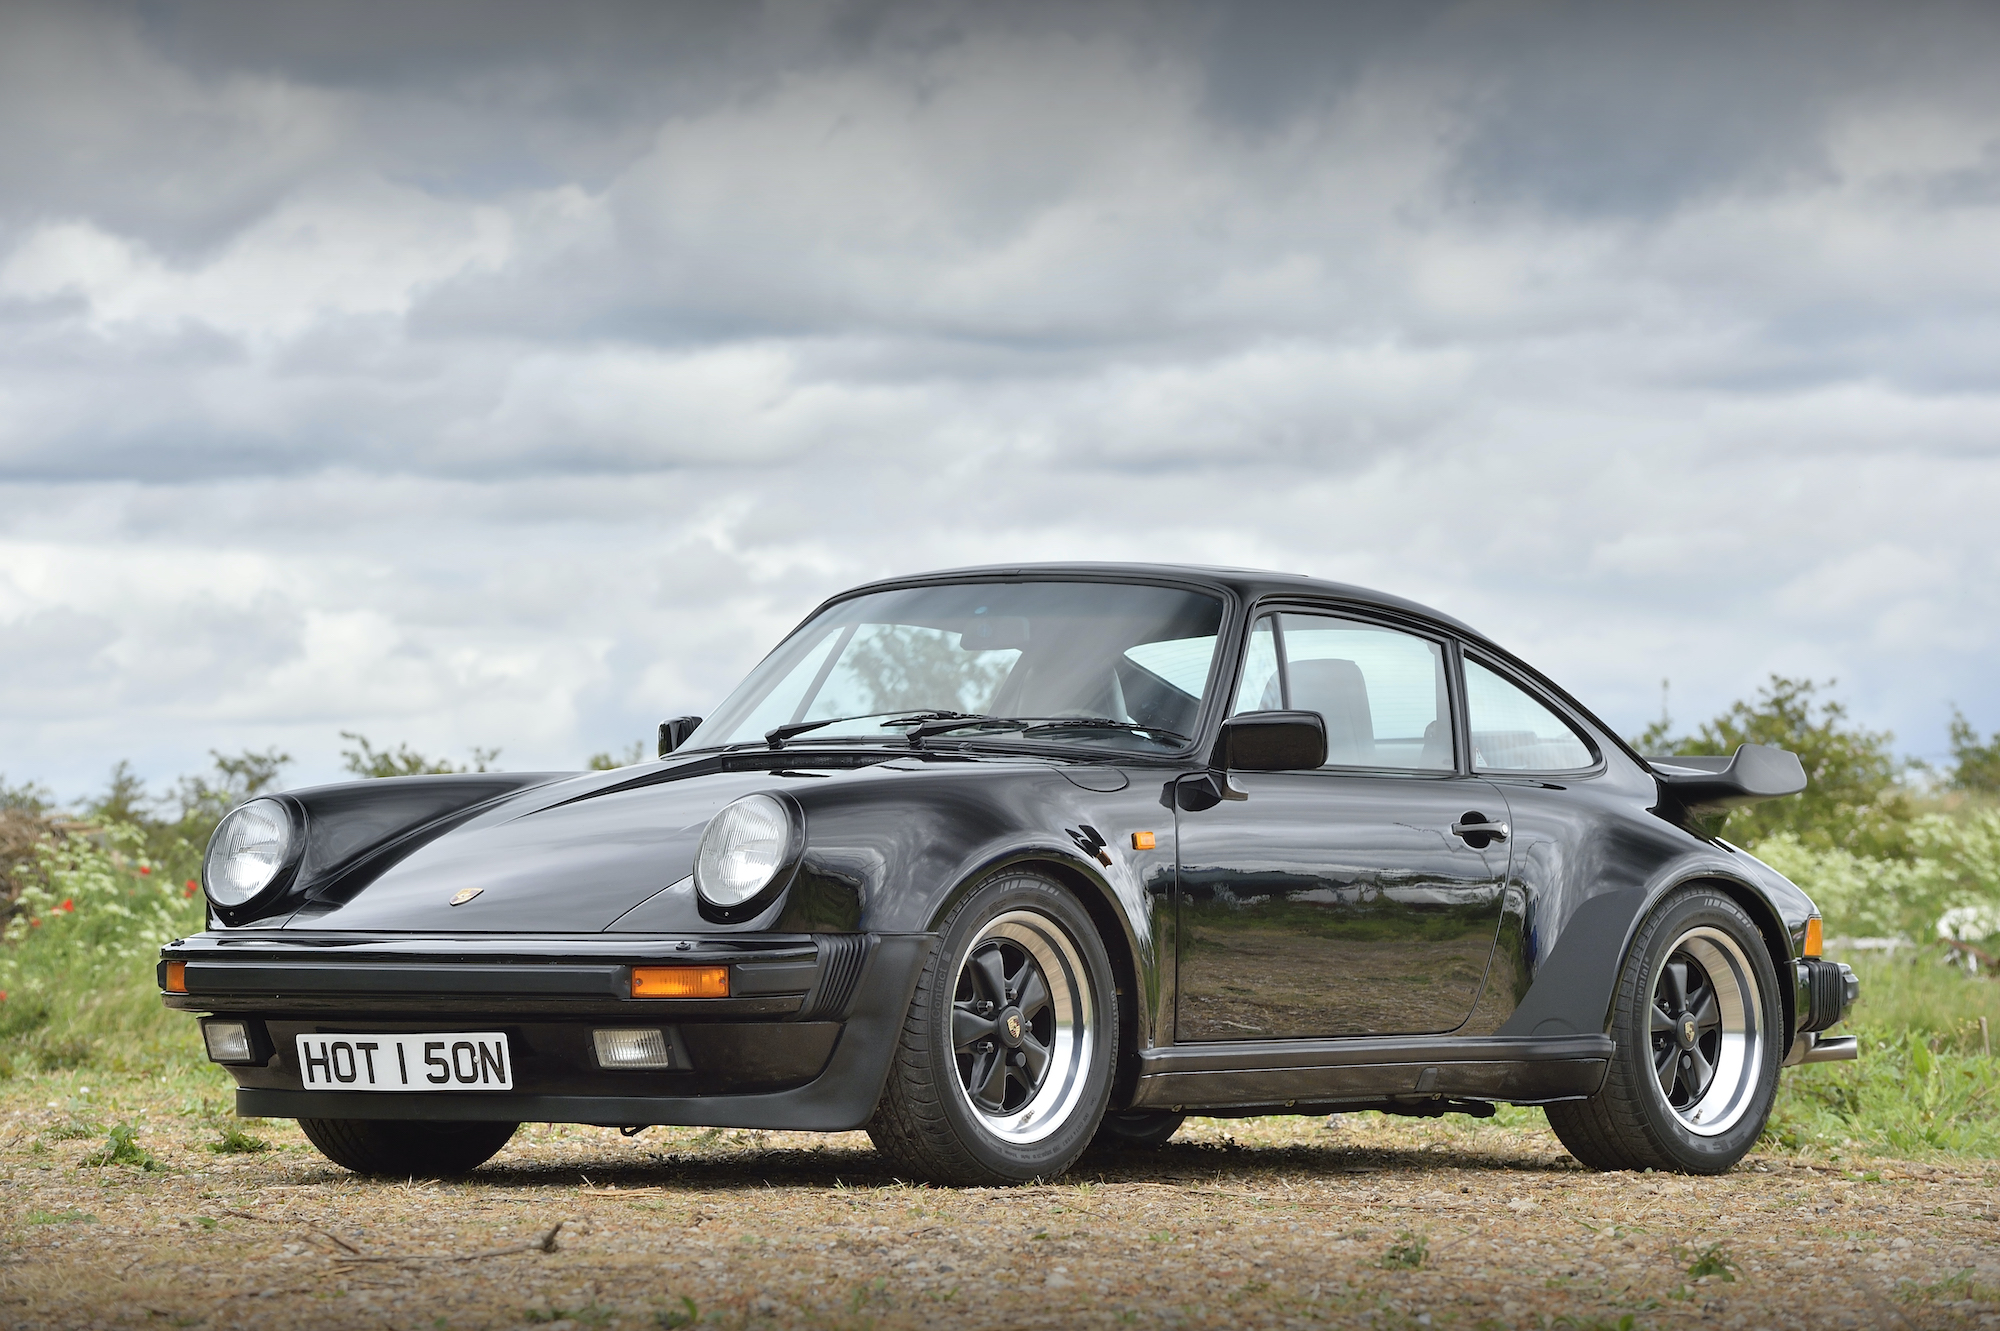 1987 Porsche 911 930 Turbo Lhd And One Owner